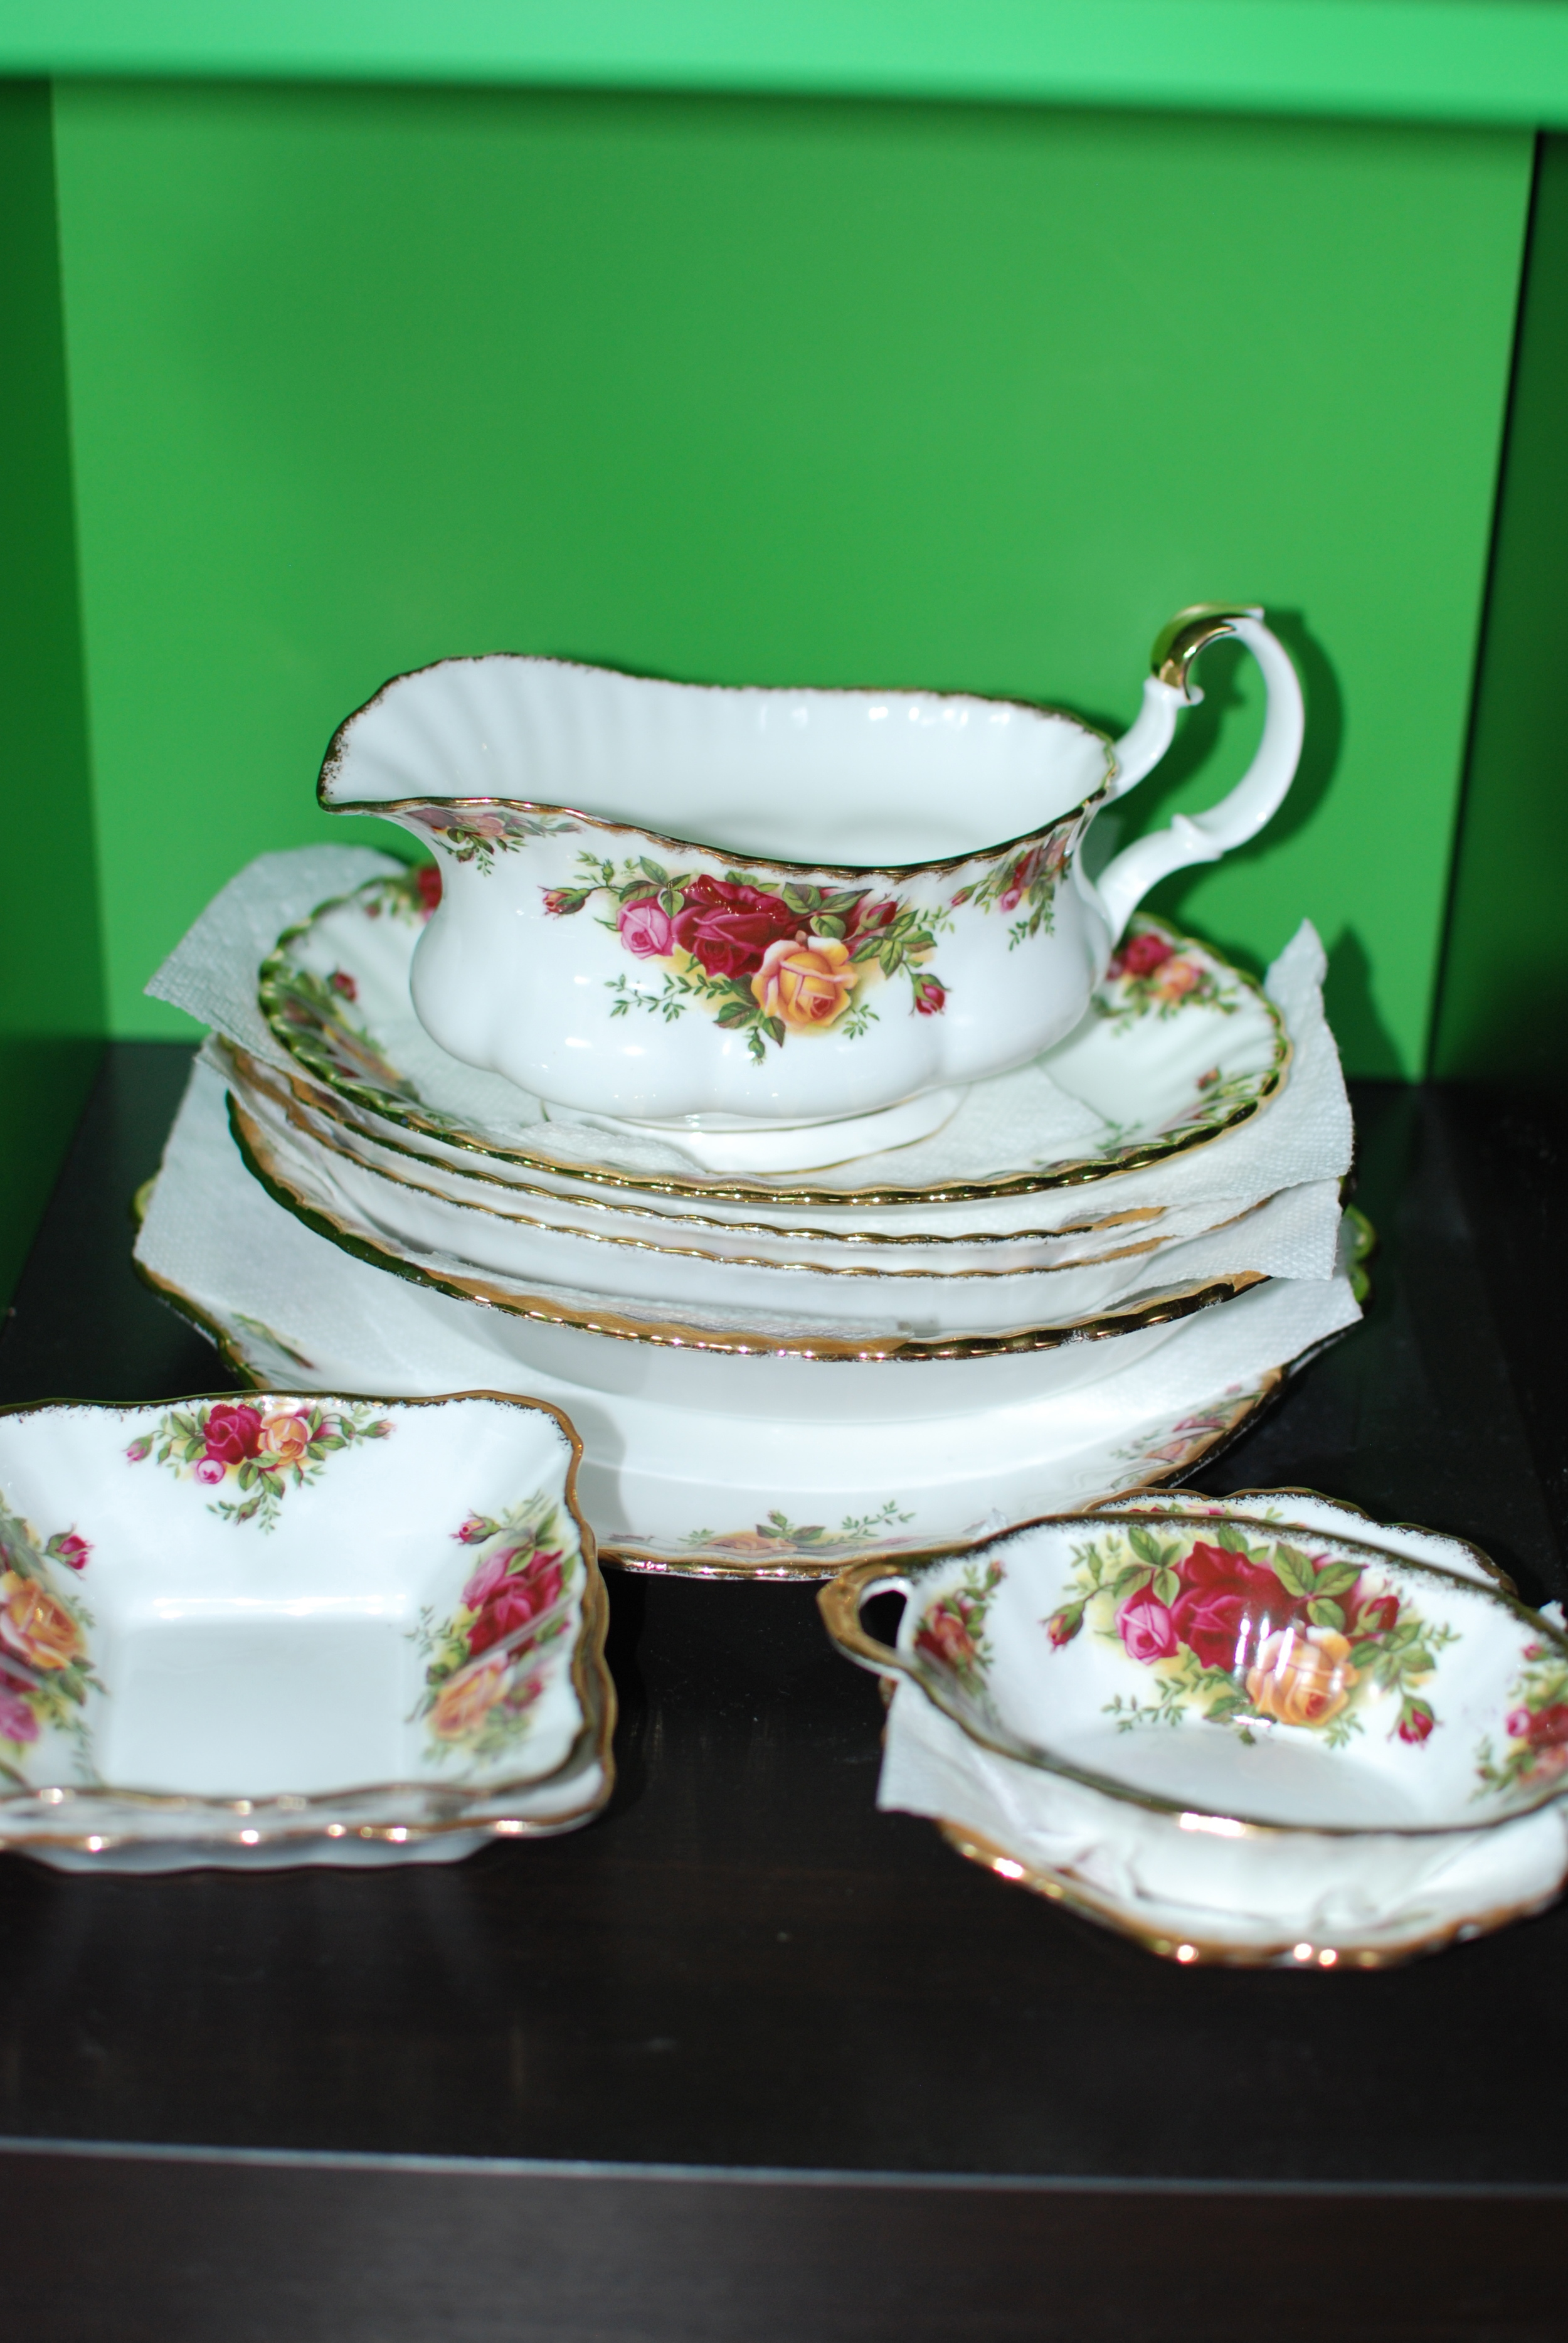 The Serving Dishes